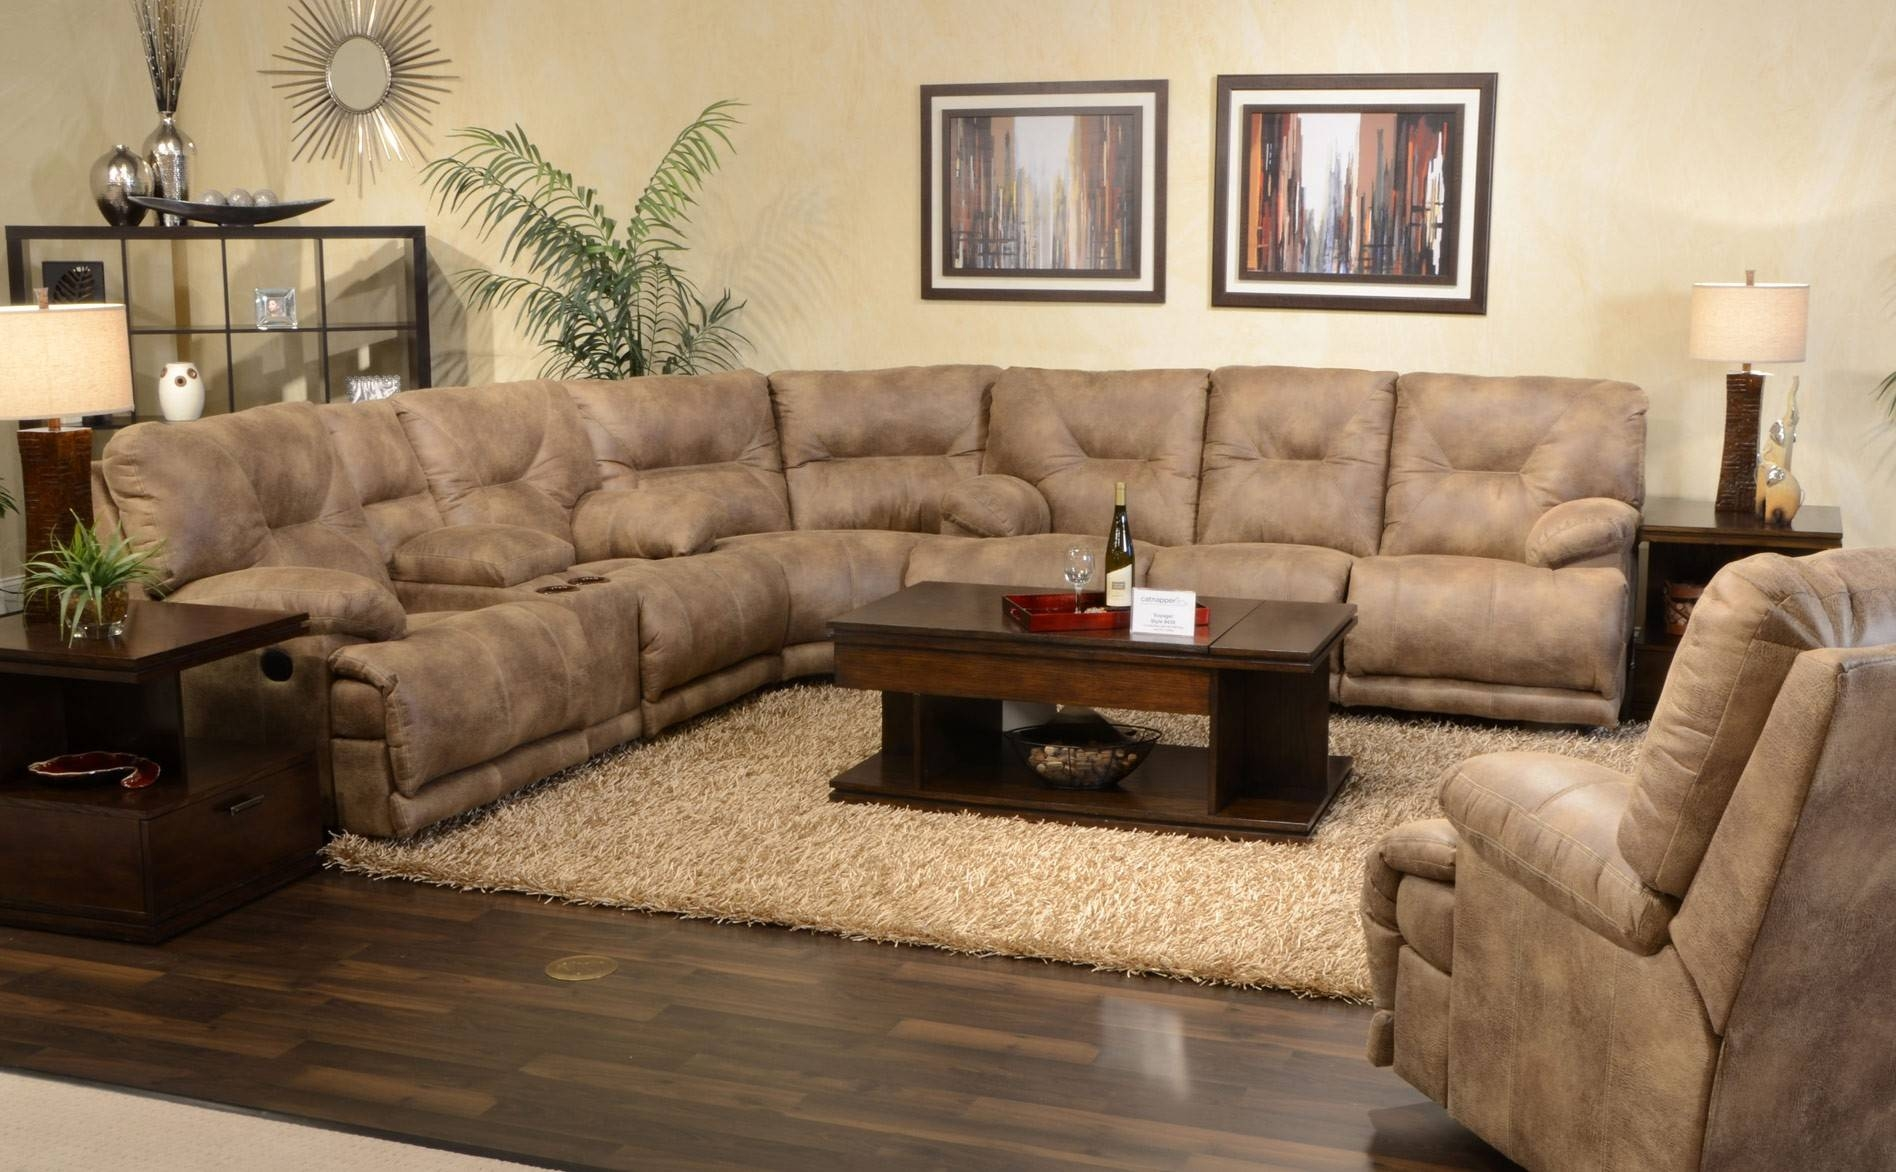 2017 Latest Slipcovers for Sectional Sofas With Recliners